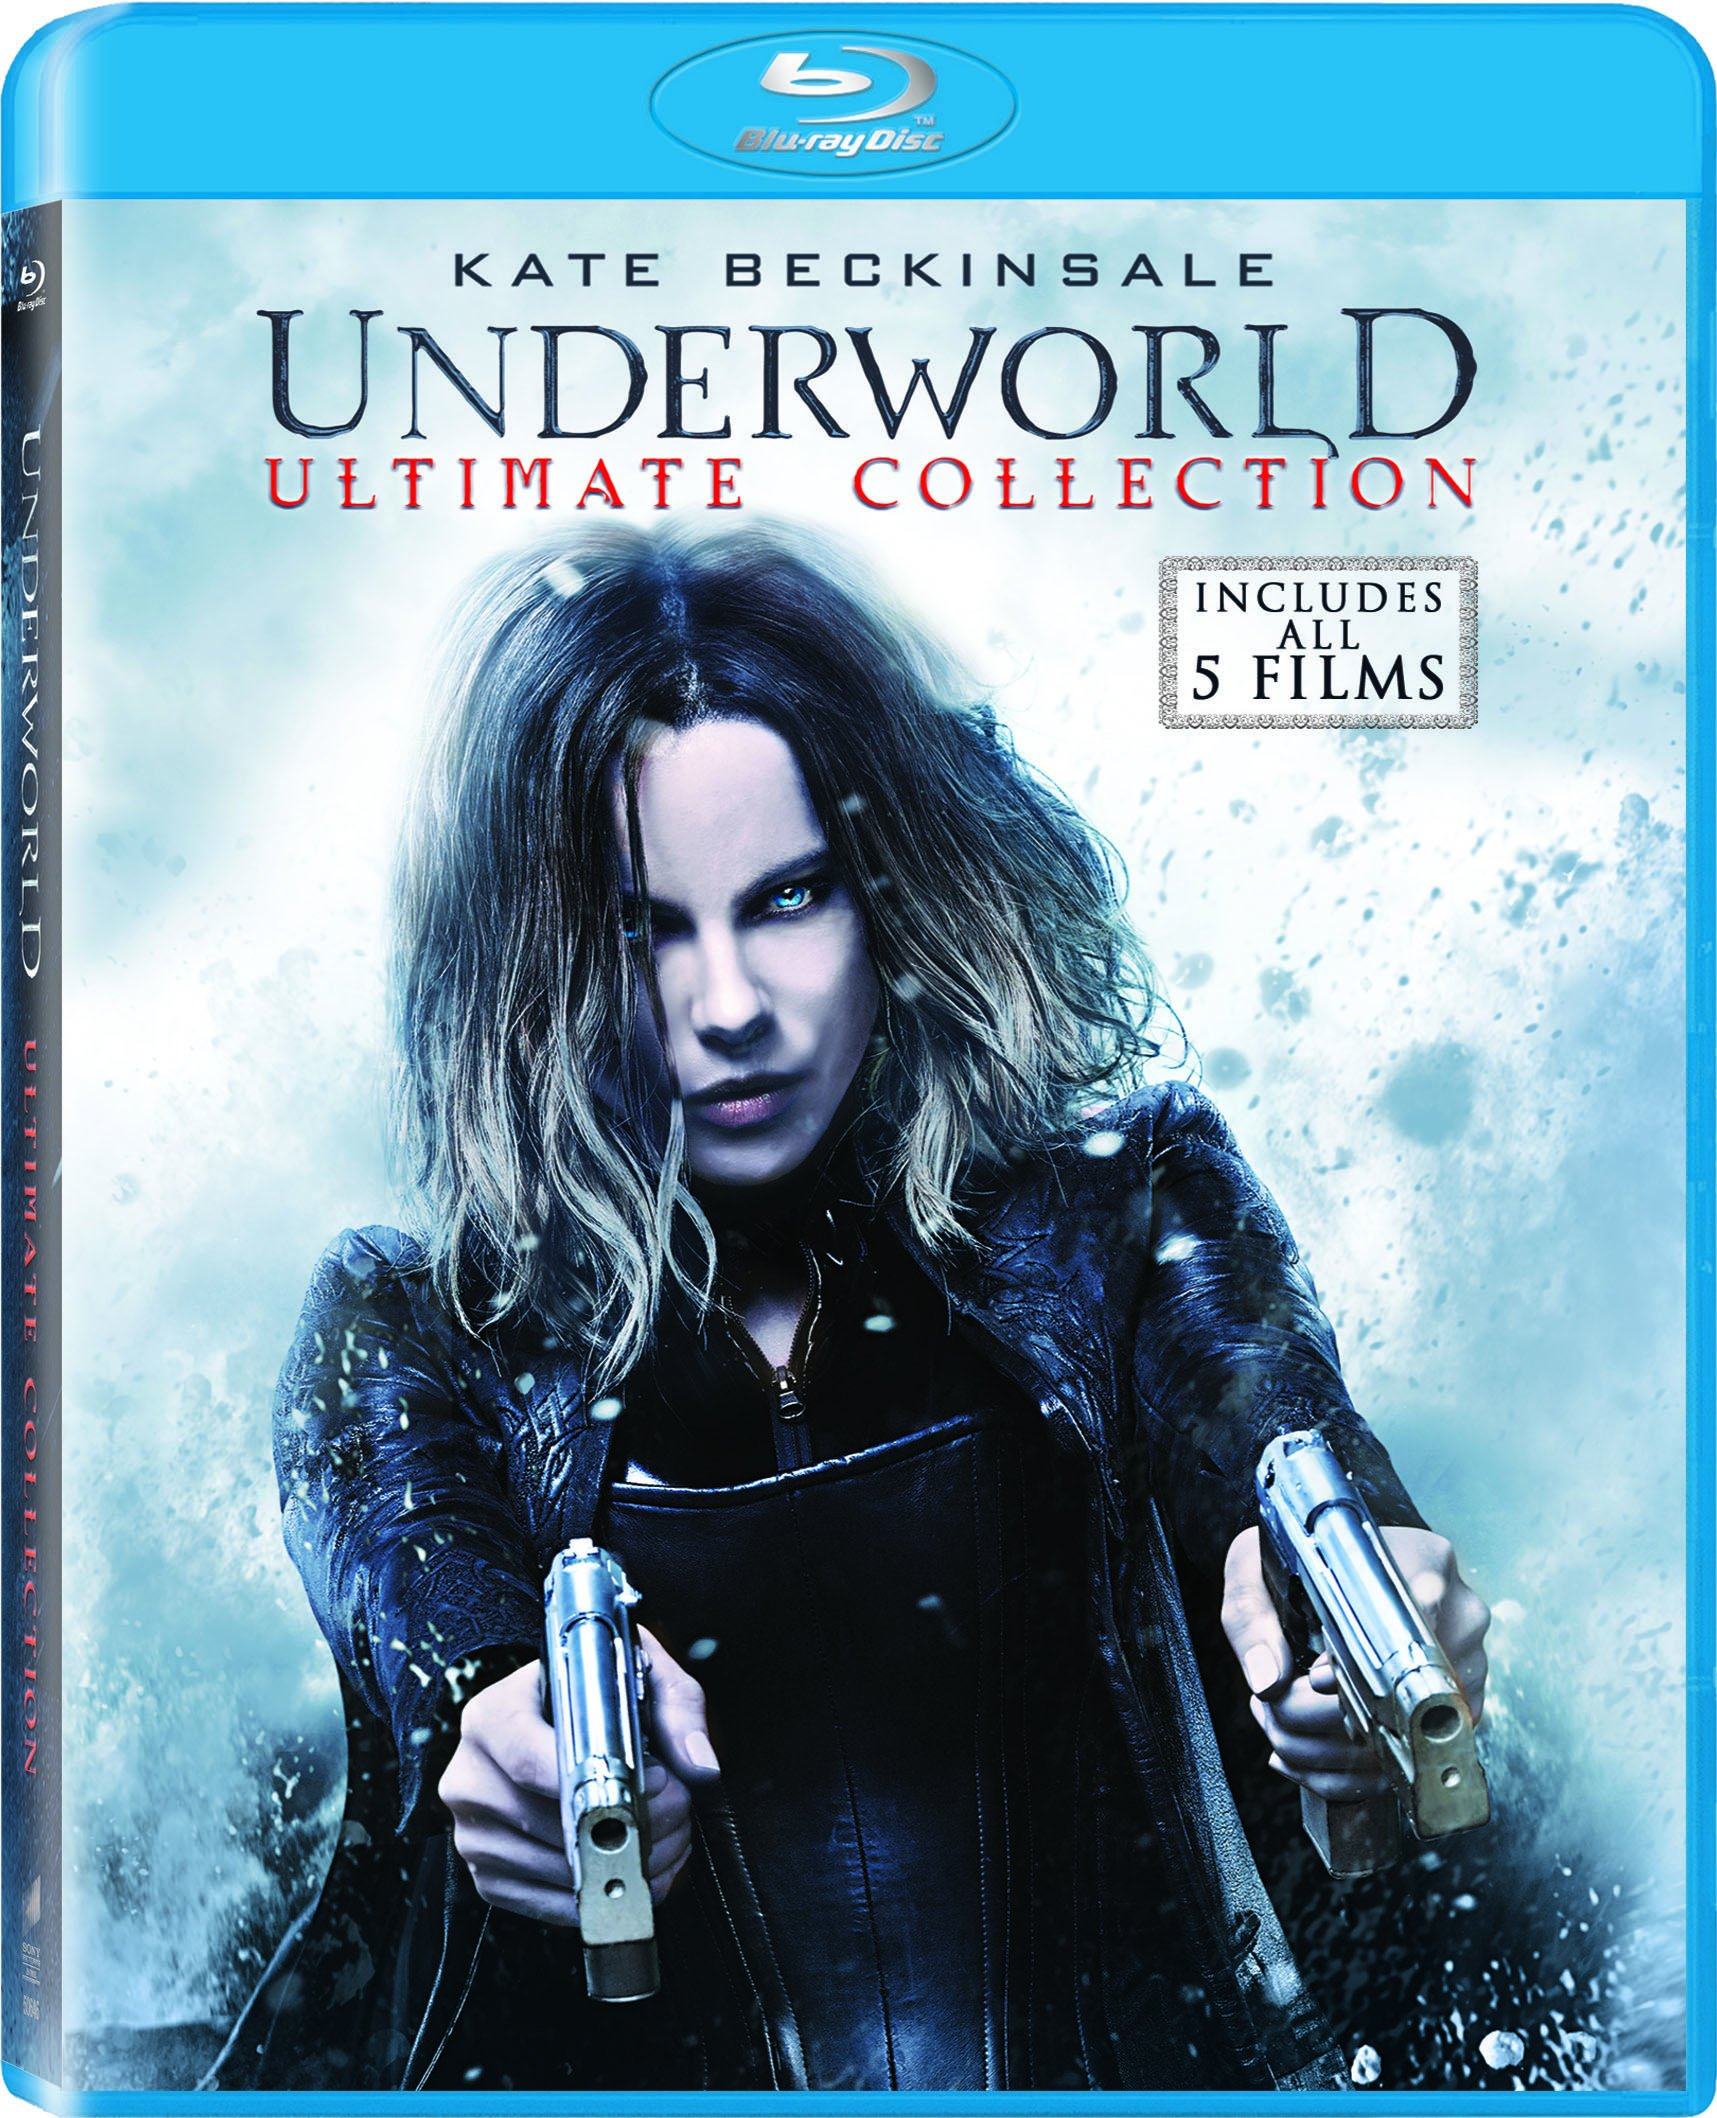 Blu-ray : Underworld/ Underworld: Awakening/ Underworld: Evolution/ Underworld: Bloodwars/ Underworld: Riselycans (Boxed Set, Ultraviolet Digital Copy, , 5 Disc)